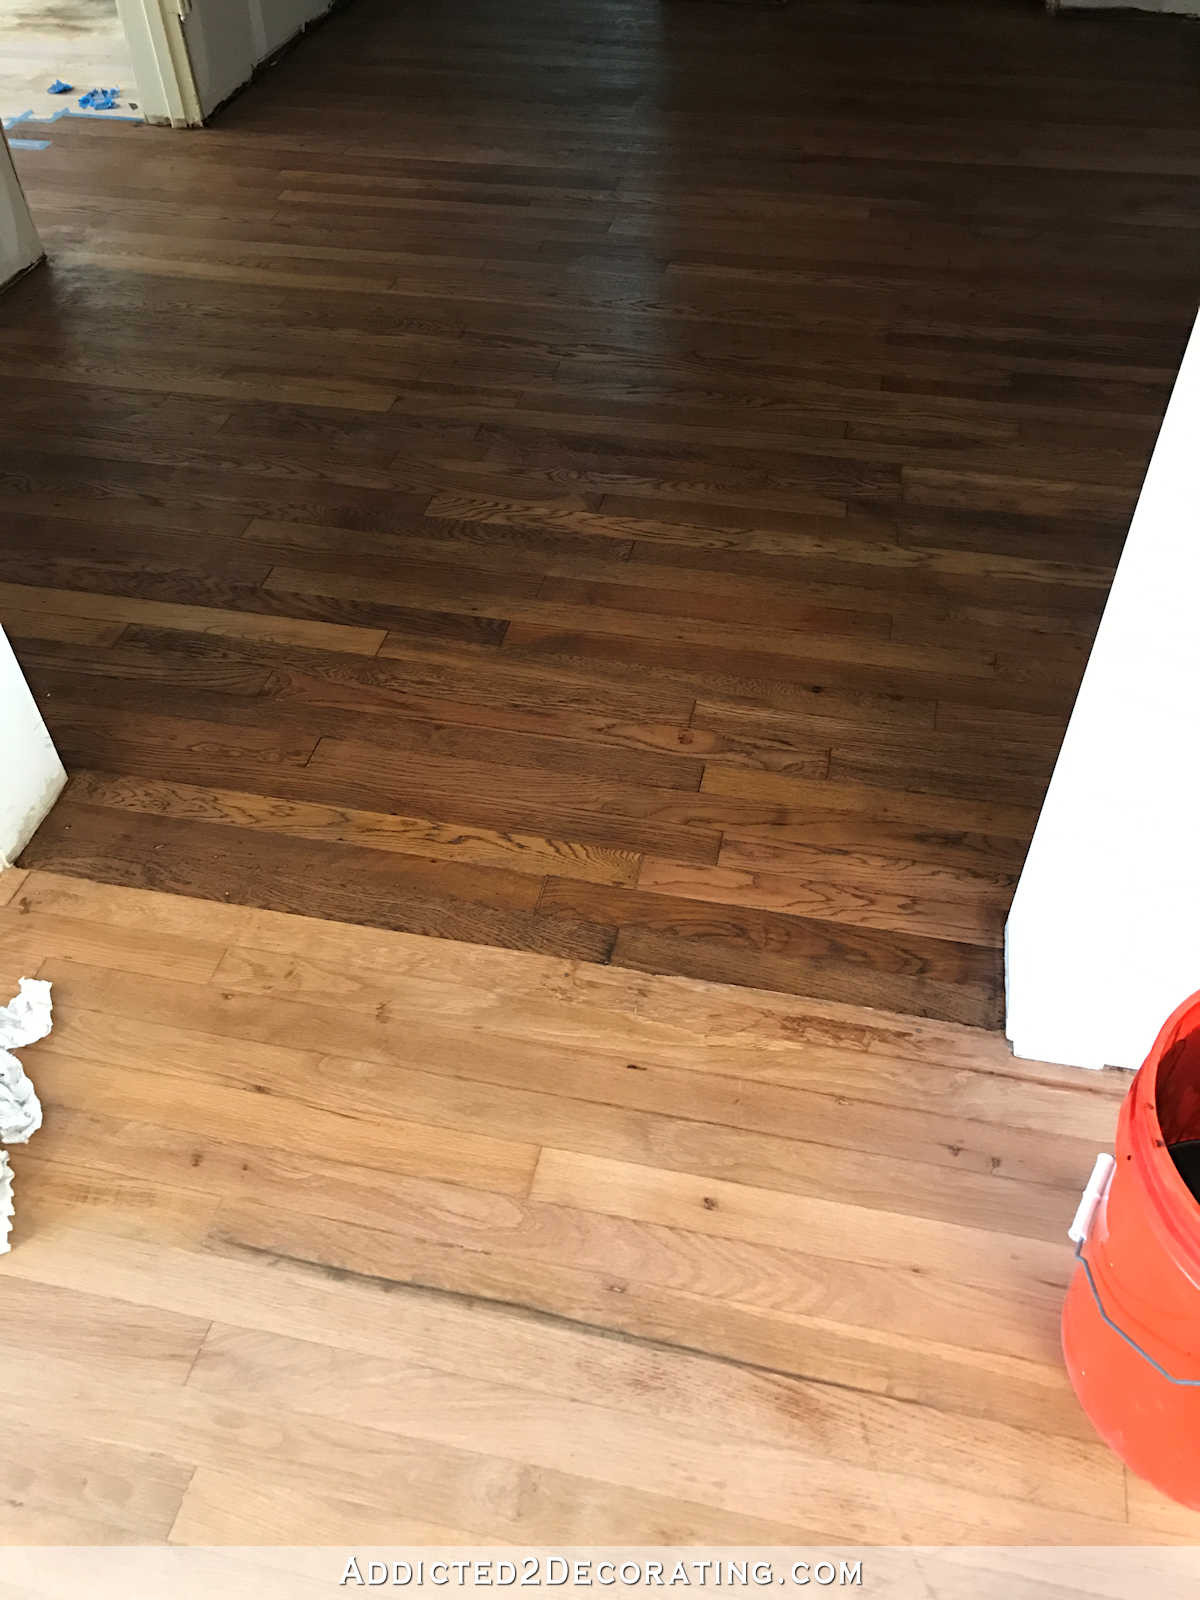 hardwood floor refinishing how long to dry of adventures in staining my red oak hardwood floors products process throughout staining red oak hardwood floors 2 tape off one section at a time for